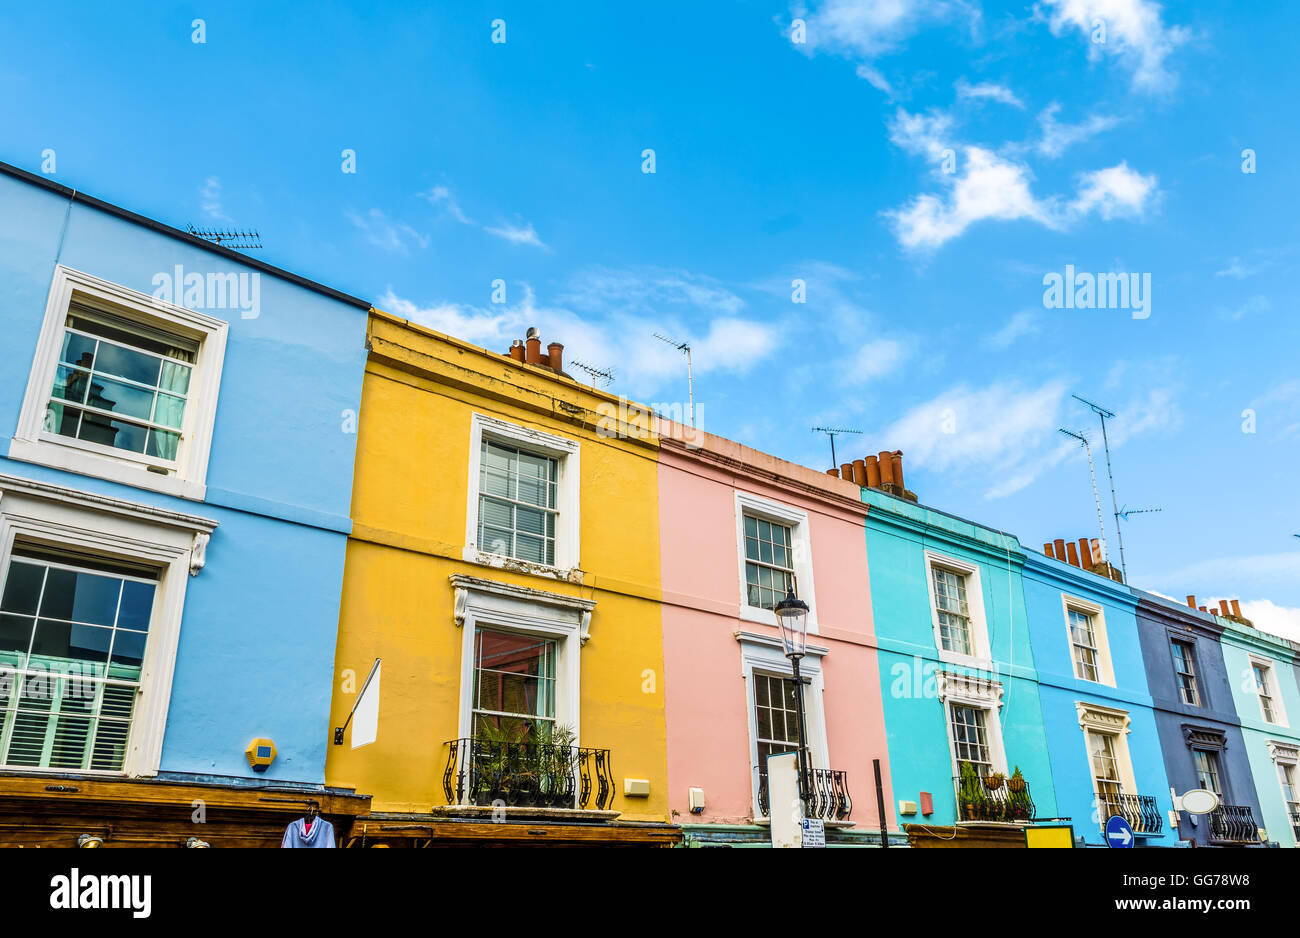 Colourful English Terraced Houses in Notting Hill, London - Stock Image